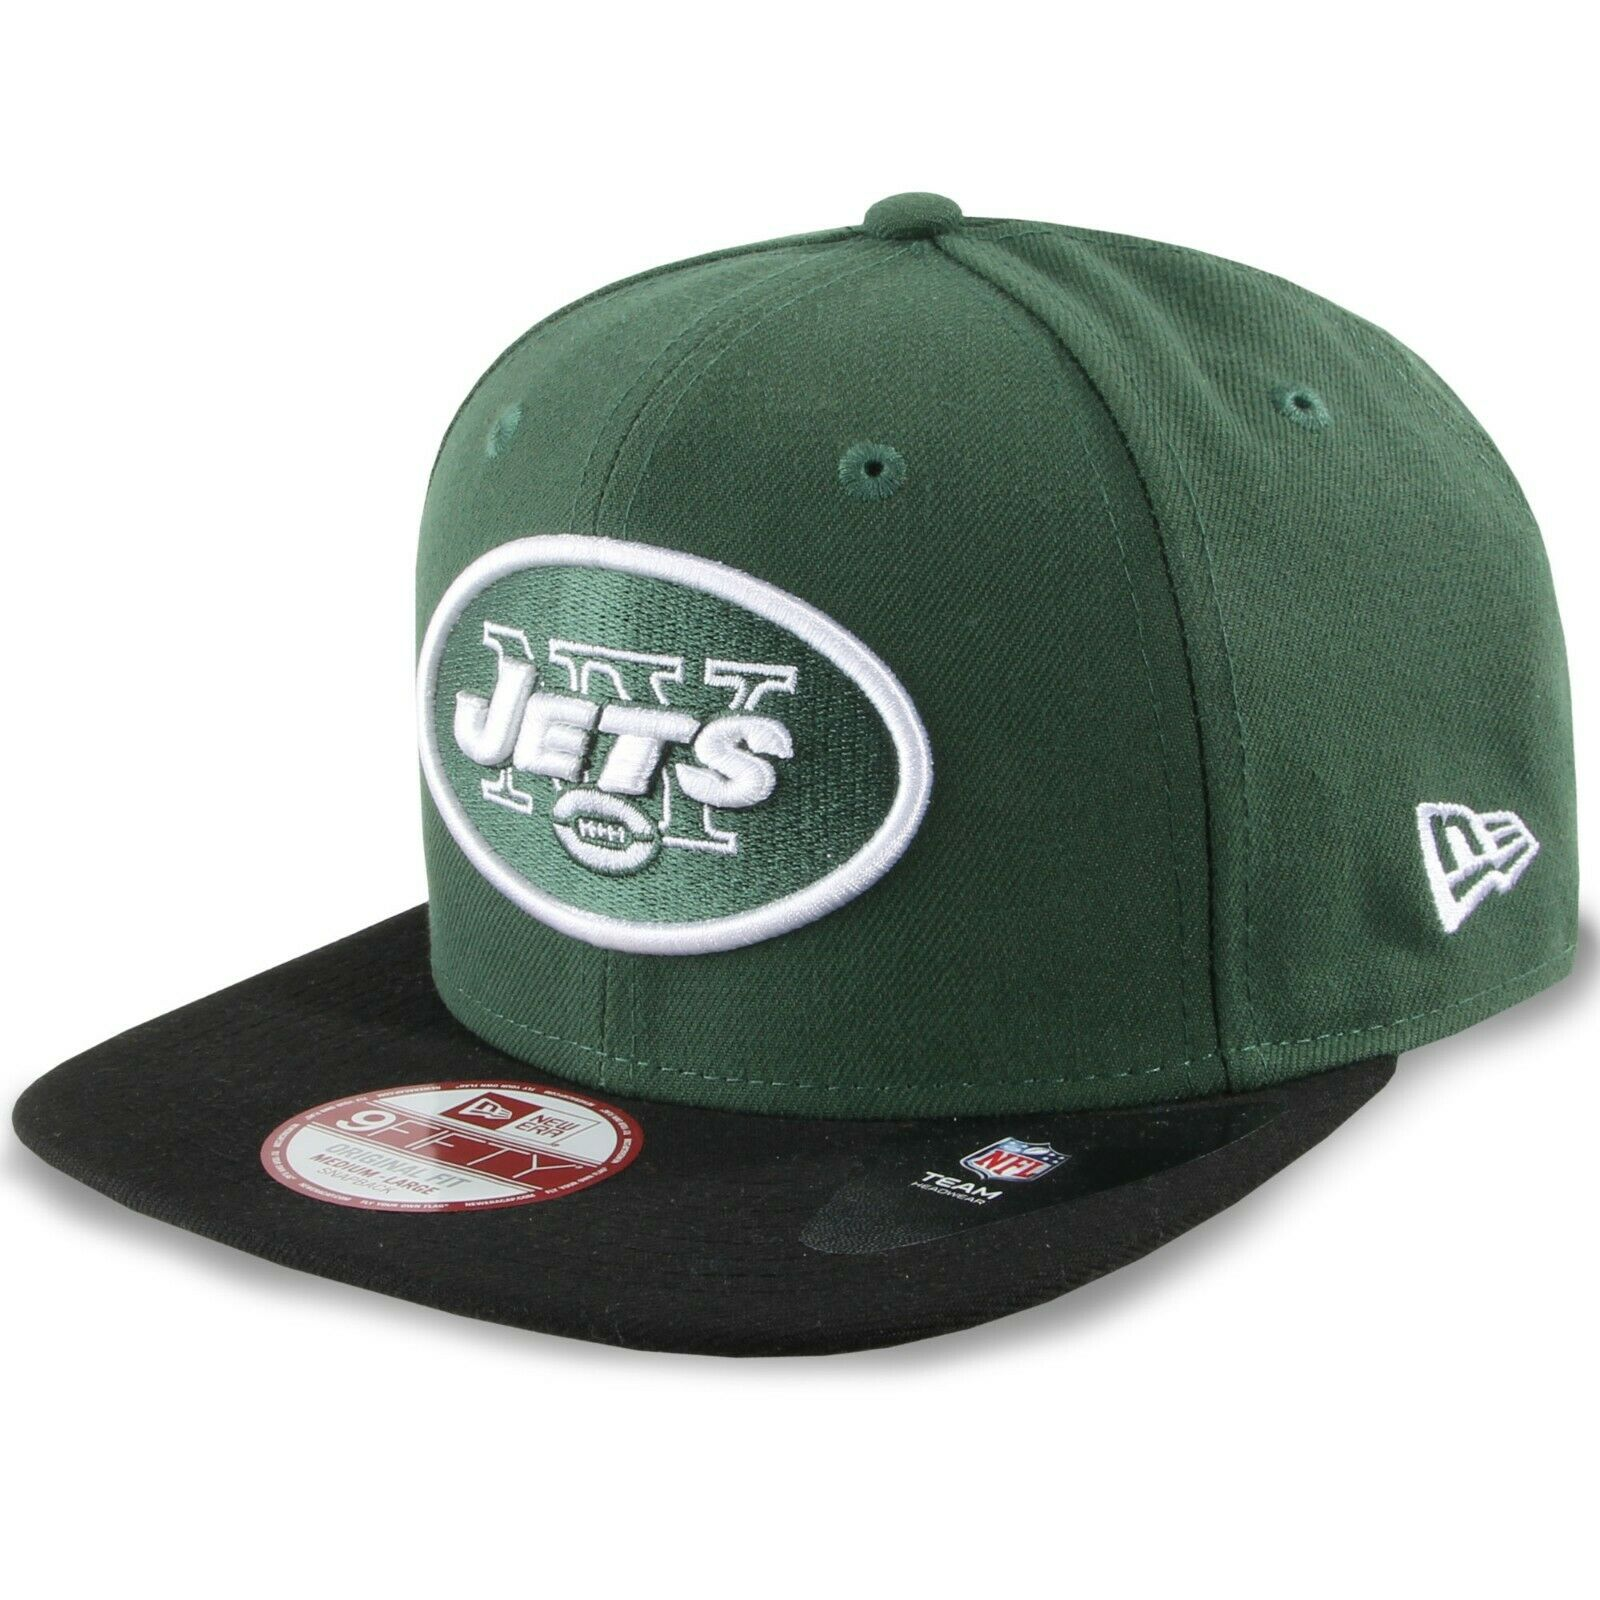 New York Jets #K28